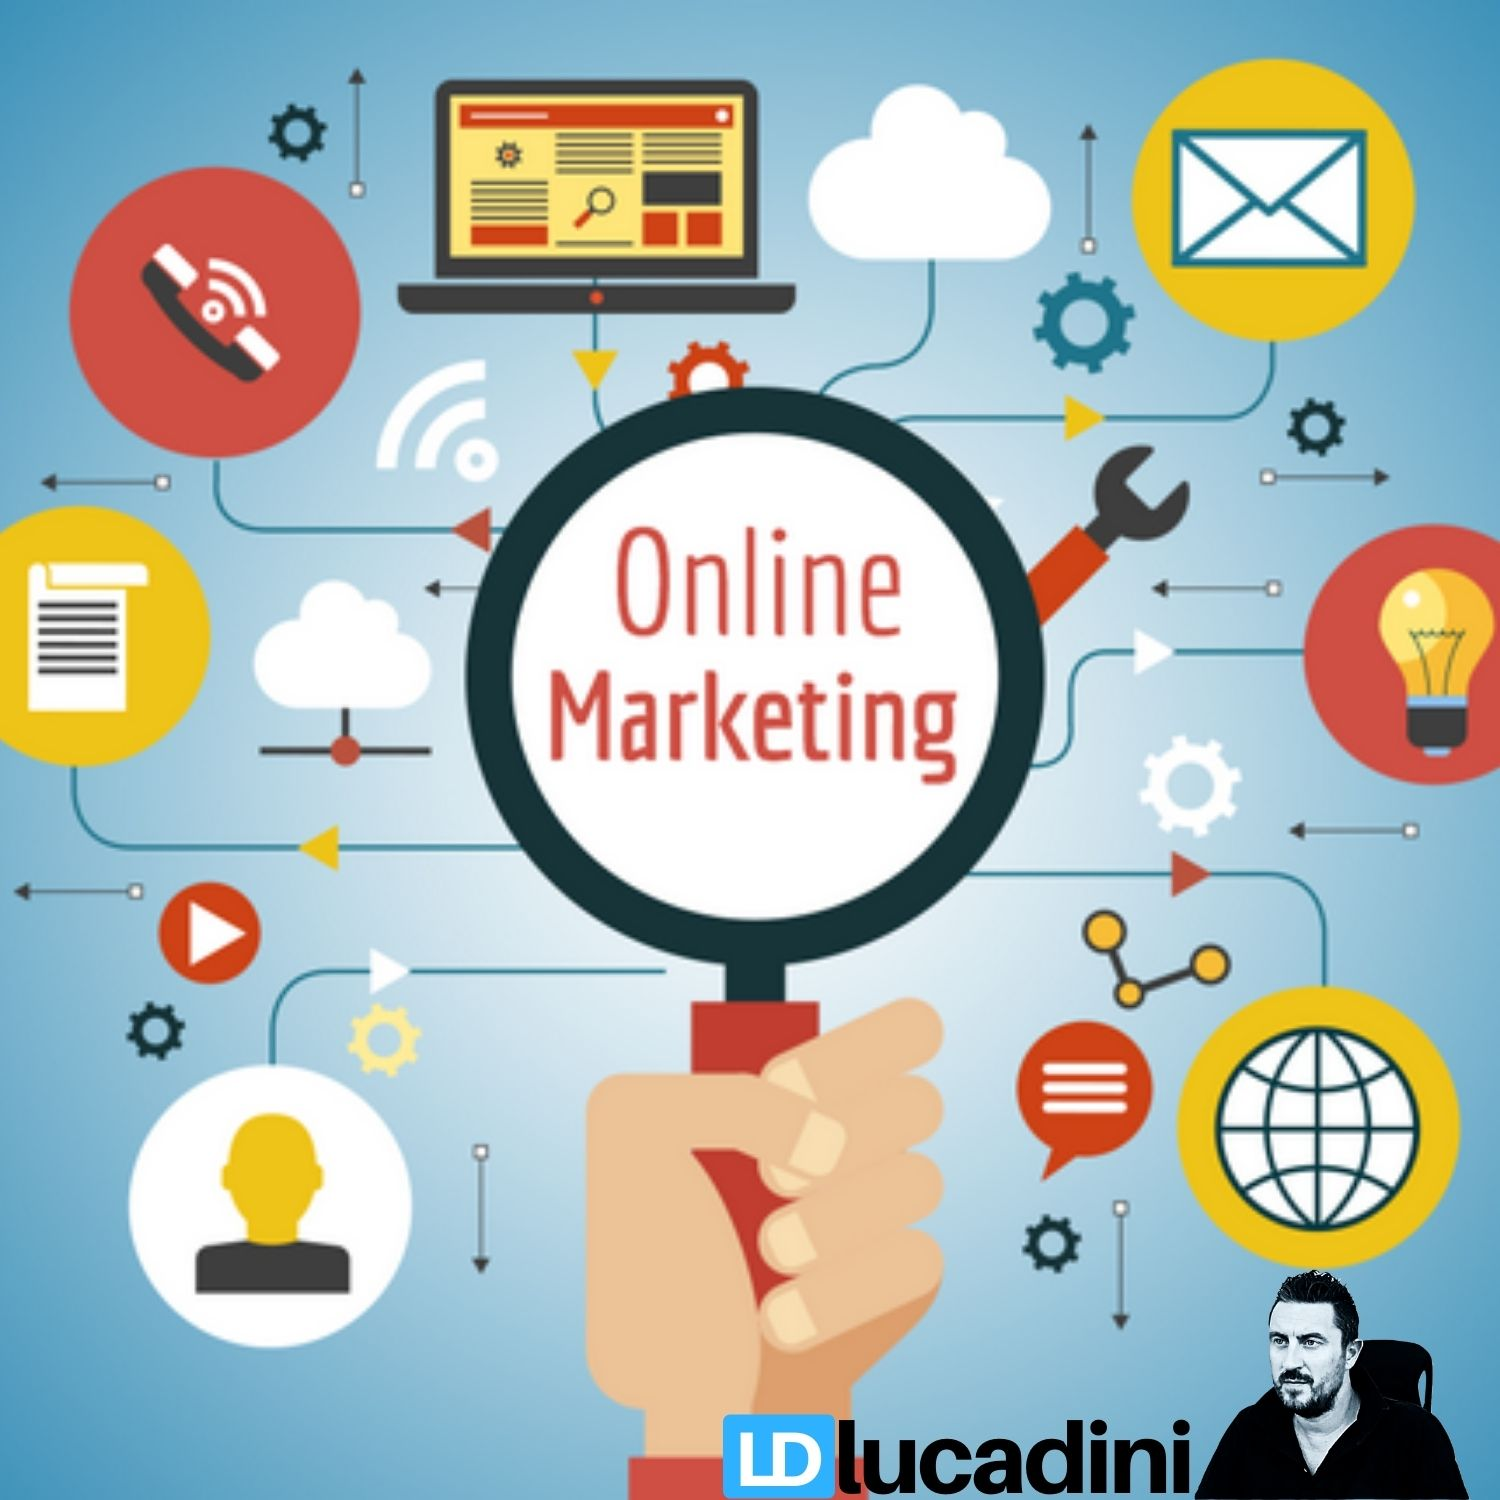 Web Marketing Manager 1 - Luca Dini